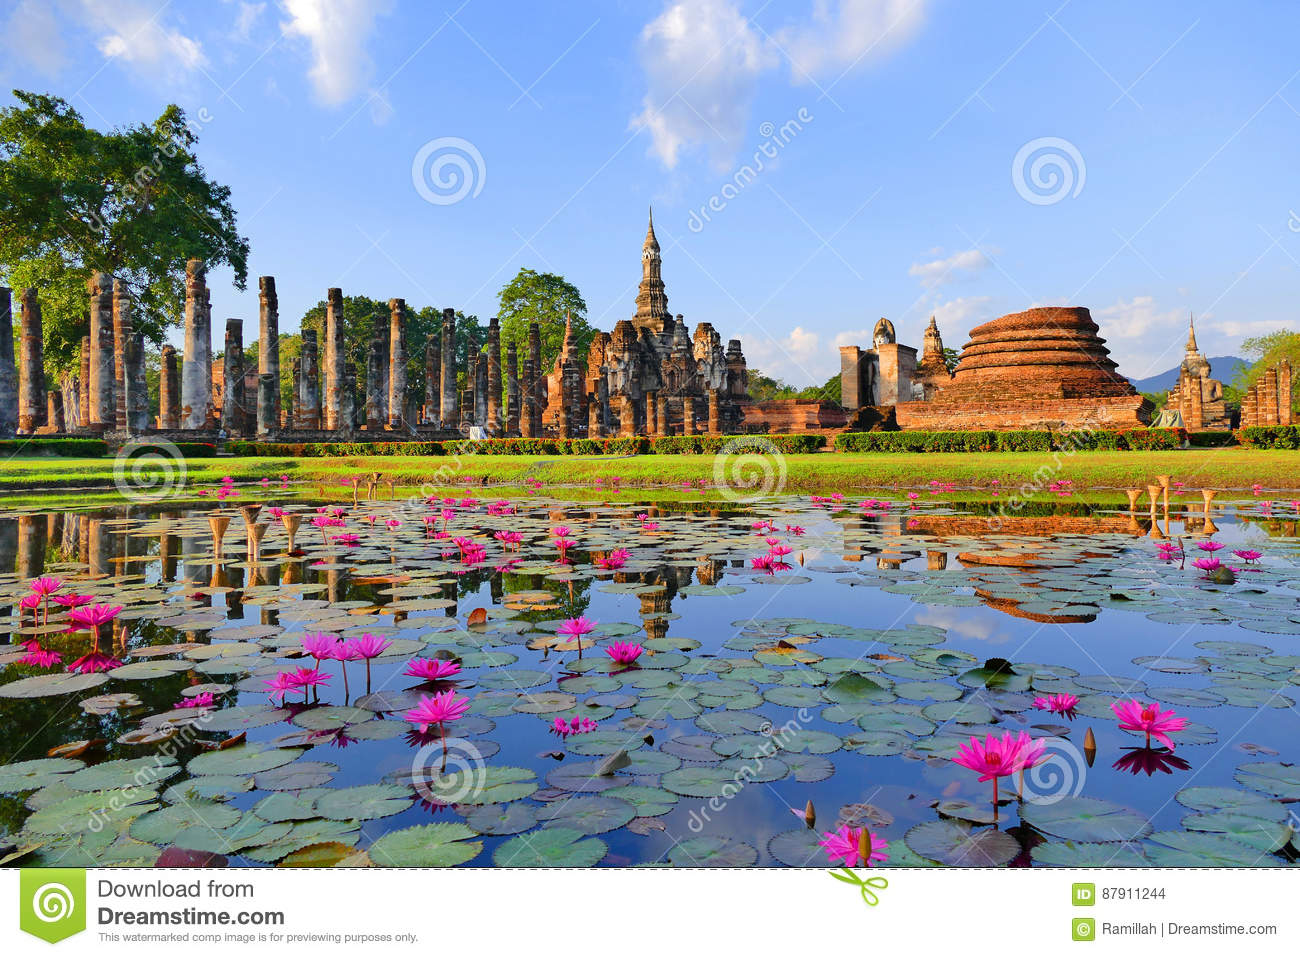 Beautiful Scenery Scenic View Ancient Buddhist Temple Ruins of Wat Mahathat in The Sukhothai Historical Park, Thailand in Summer